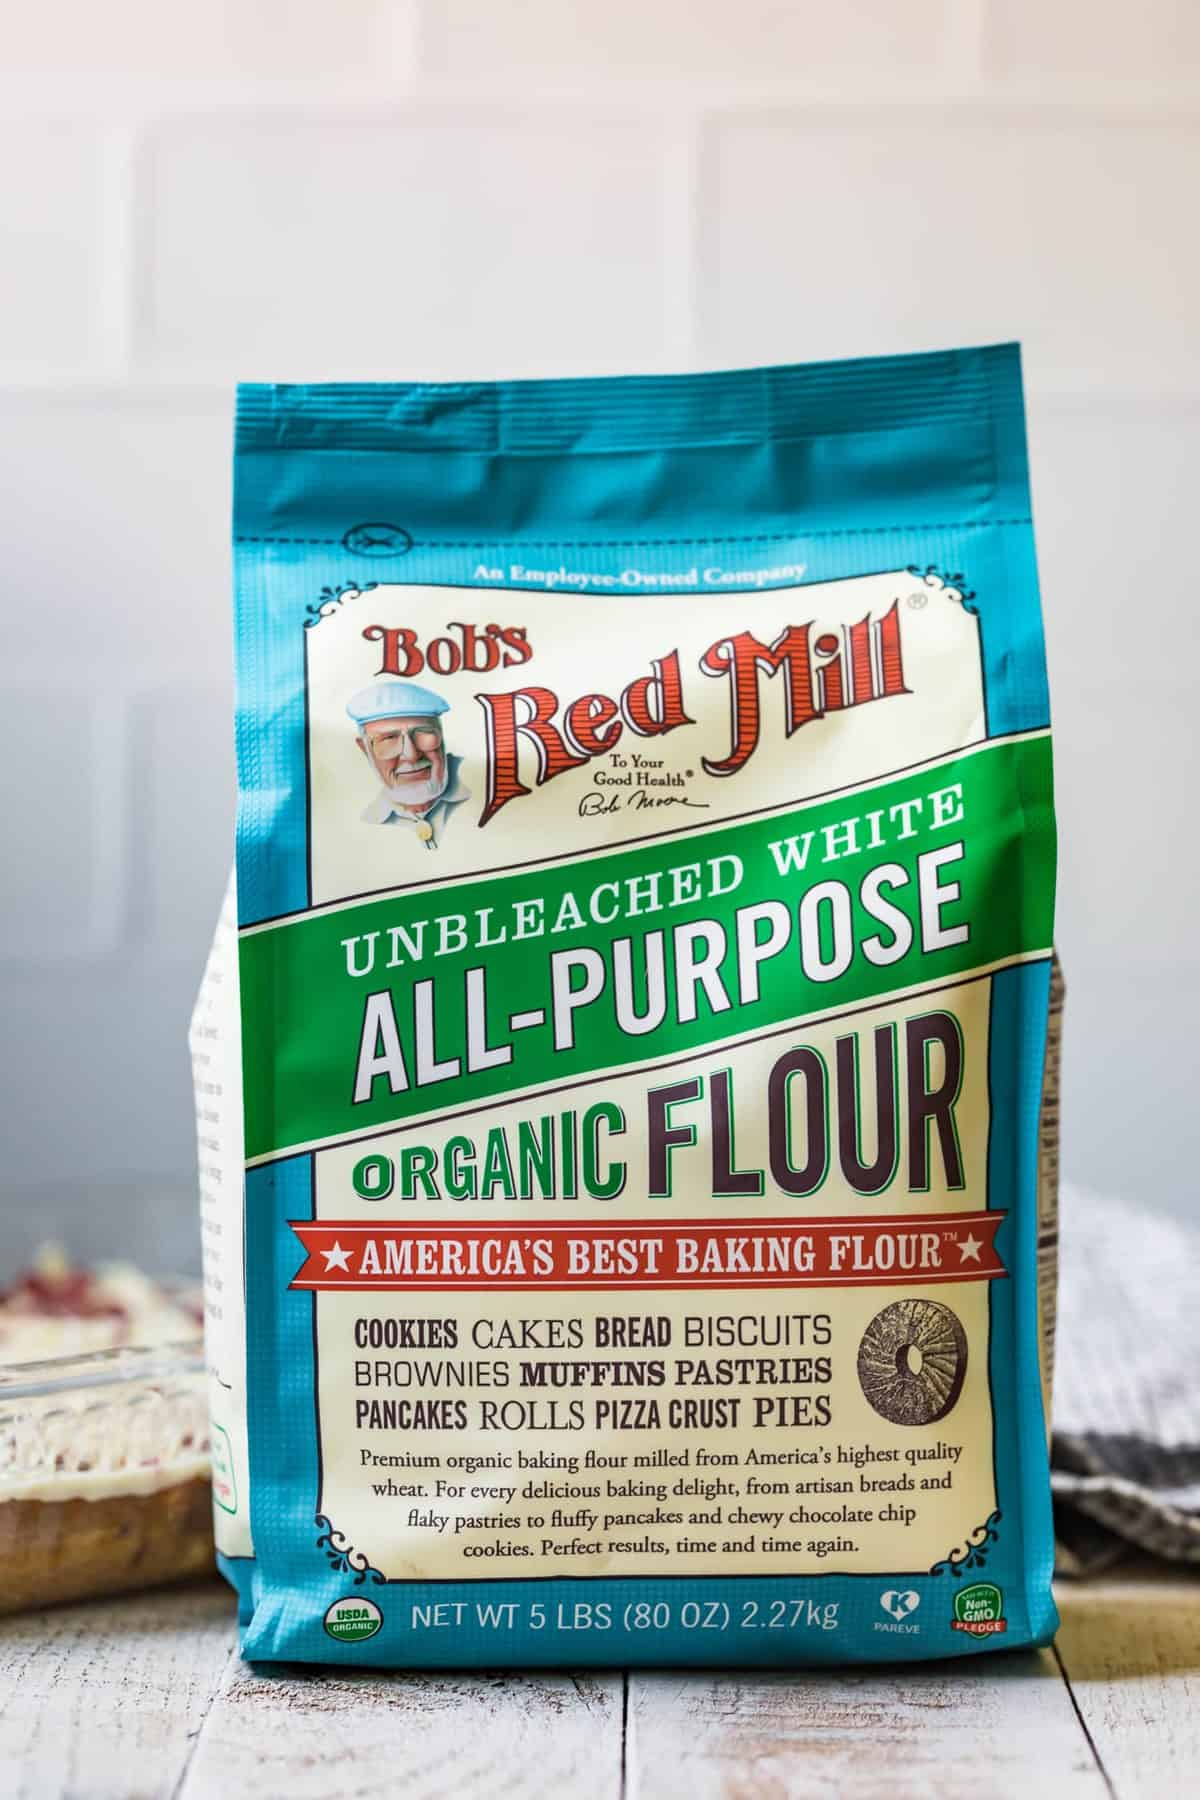 Bob's red mill unbleached white all purpose organic flour bag